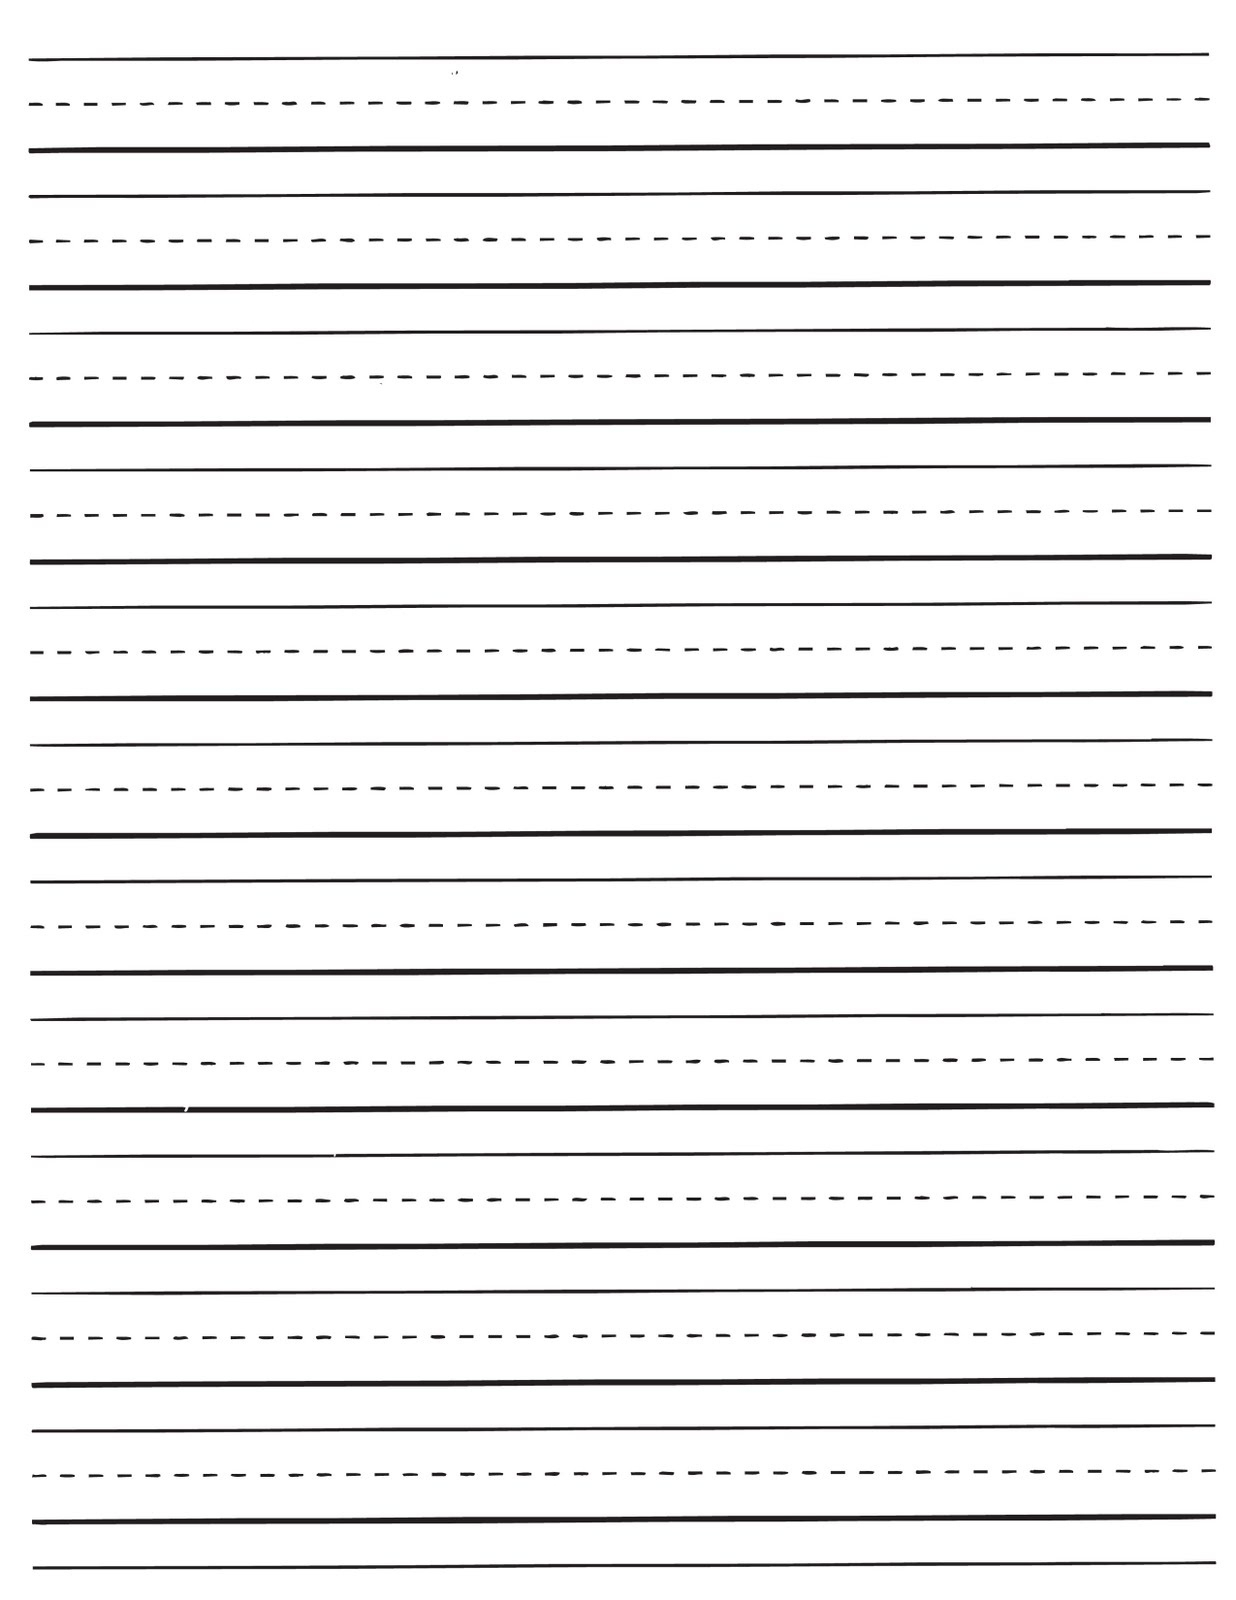 Printable Lined Paper For Kids | World Of Label - Free Printable Lined Paper